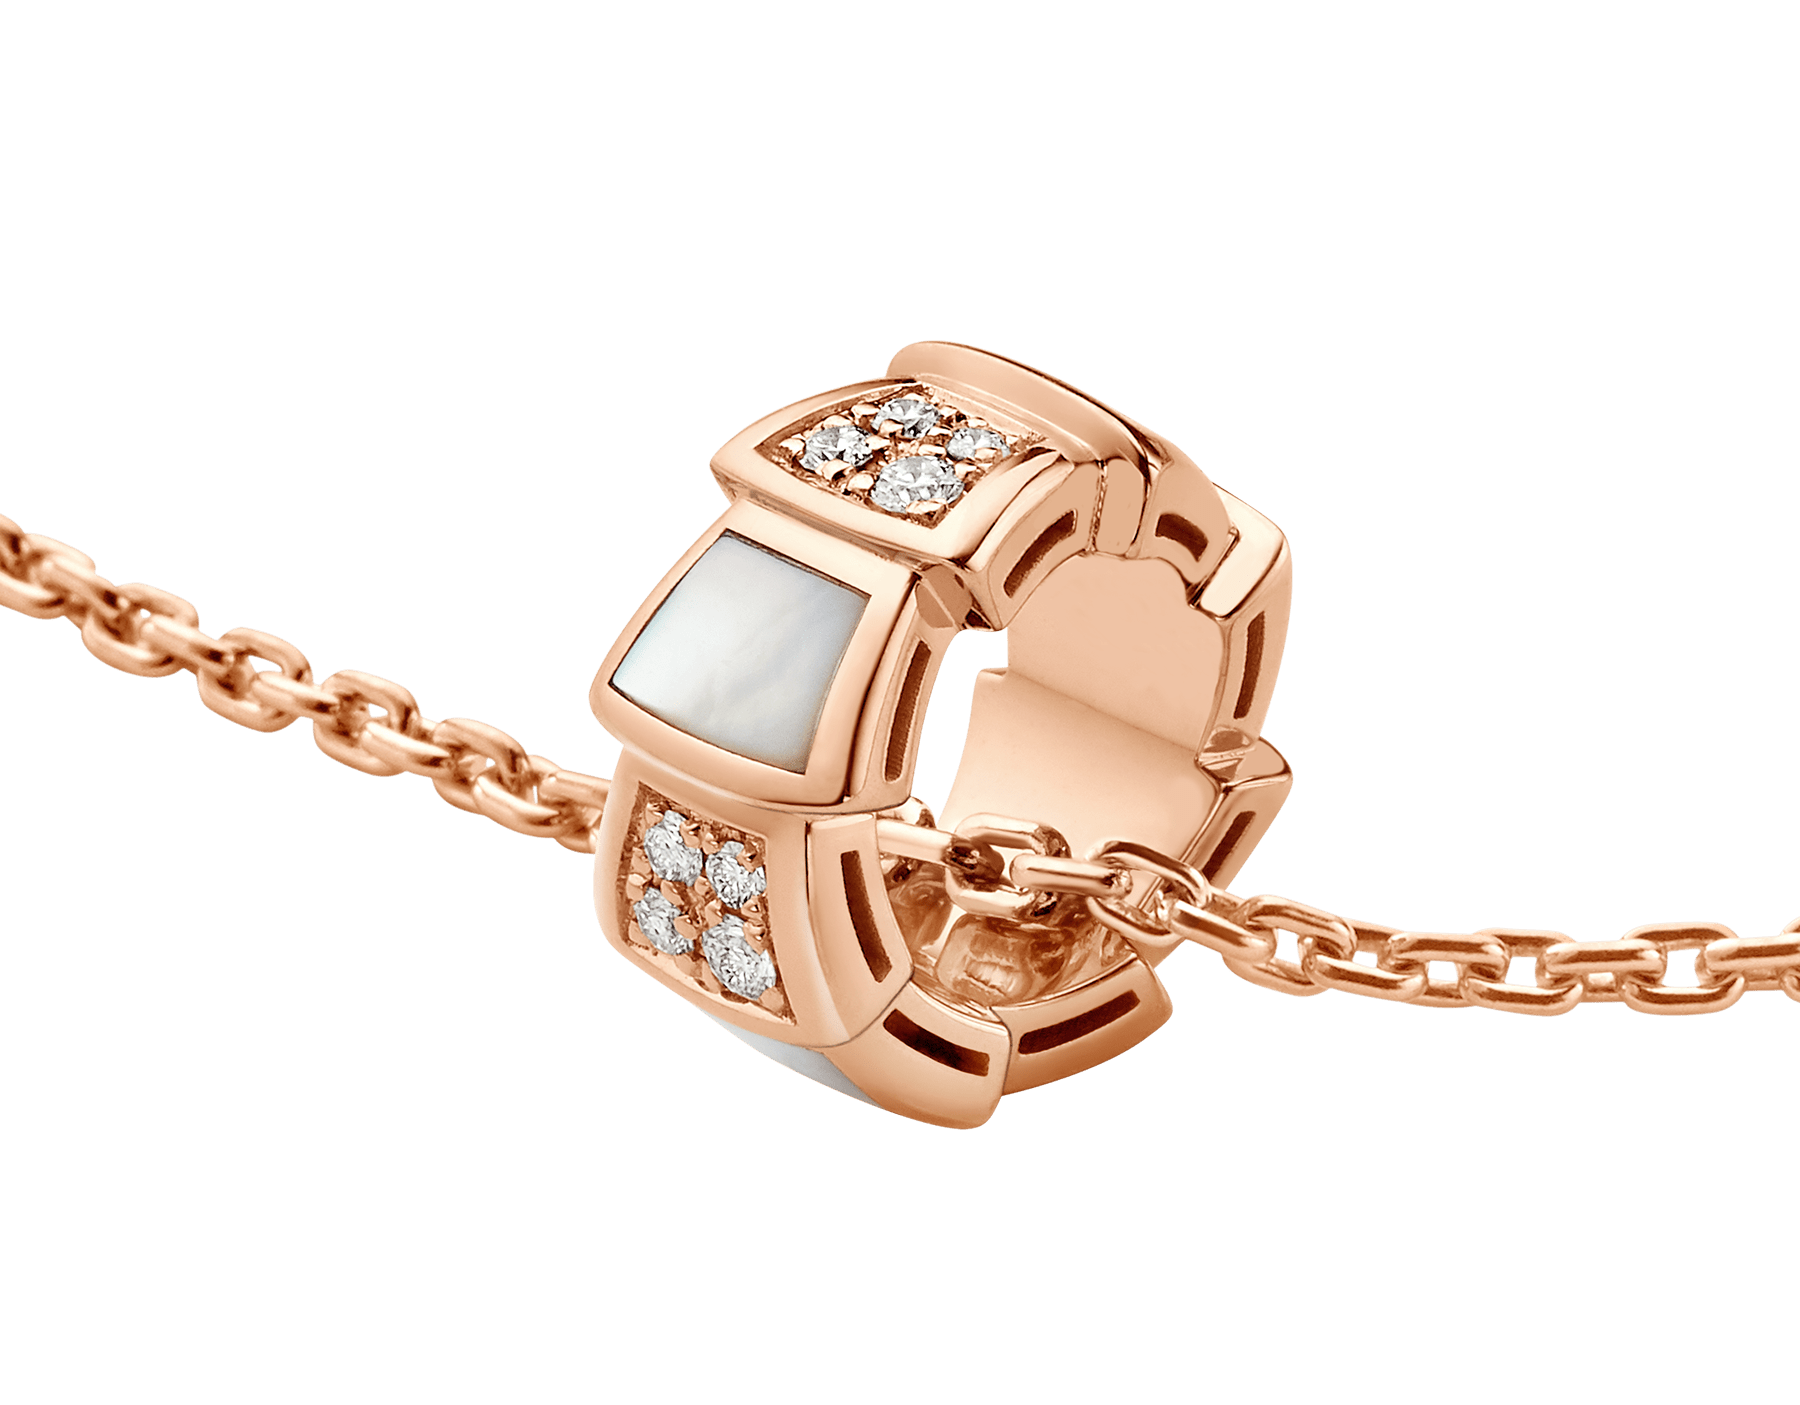 Serpenti Viper 18 kt rose gold necklace set with mother-of-pearl elements and pavé diamonds on the pendant. 357095 image 3